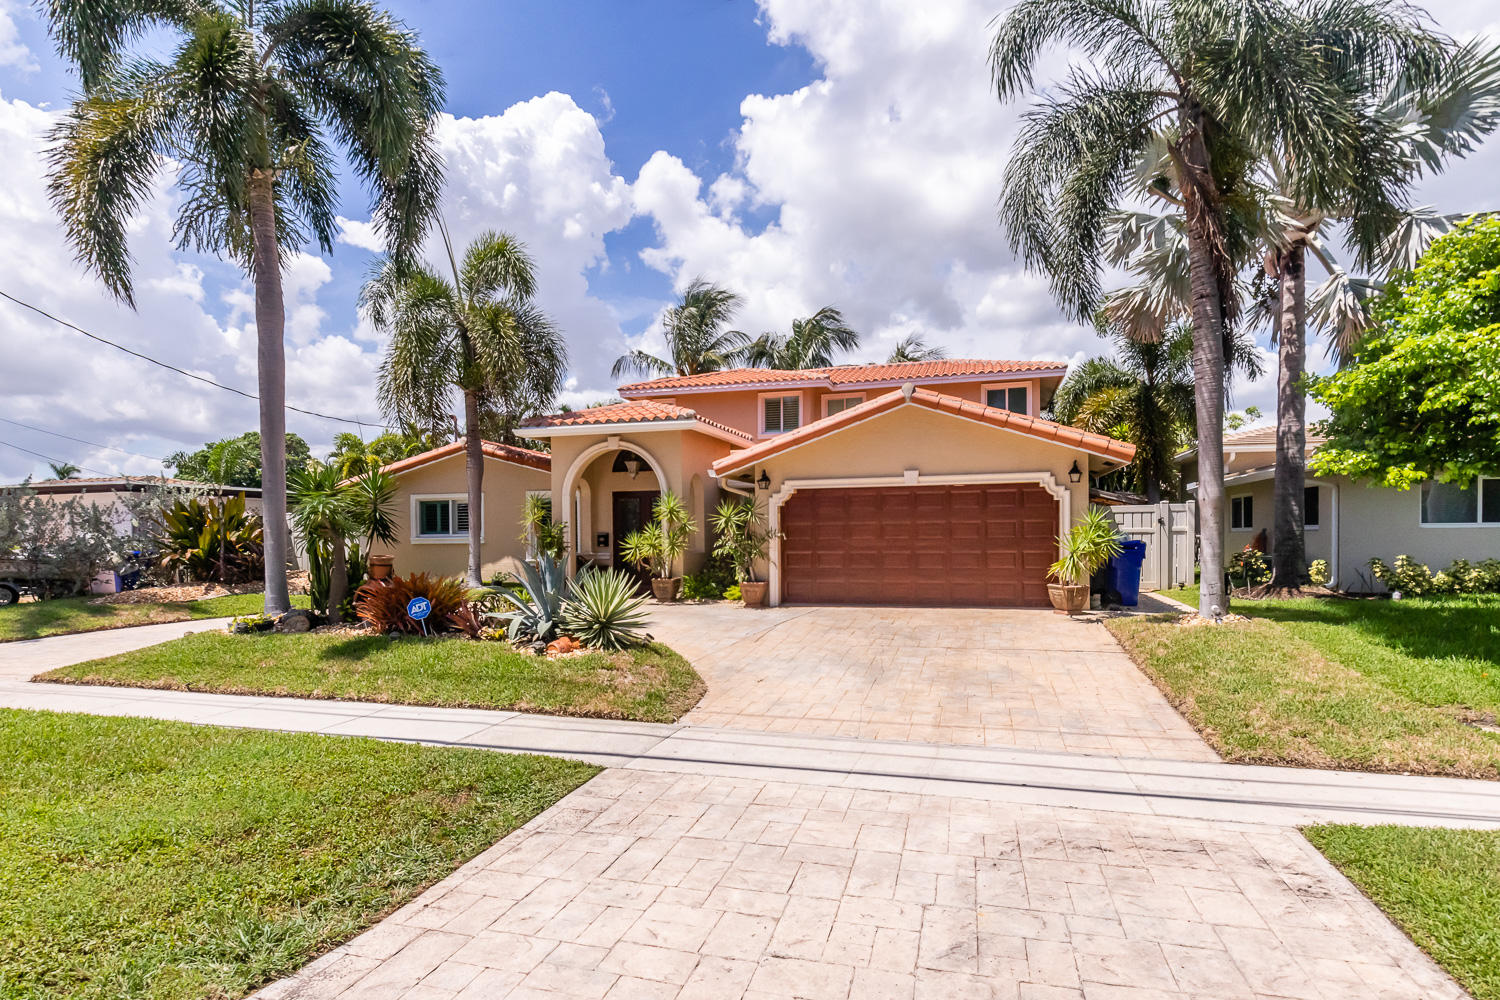 631 SE 5th Ave, Pompano Beach, FL, 33060